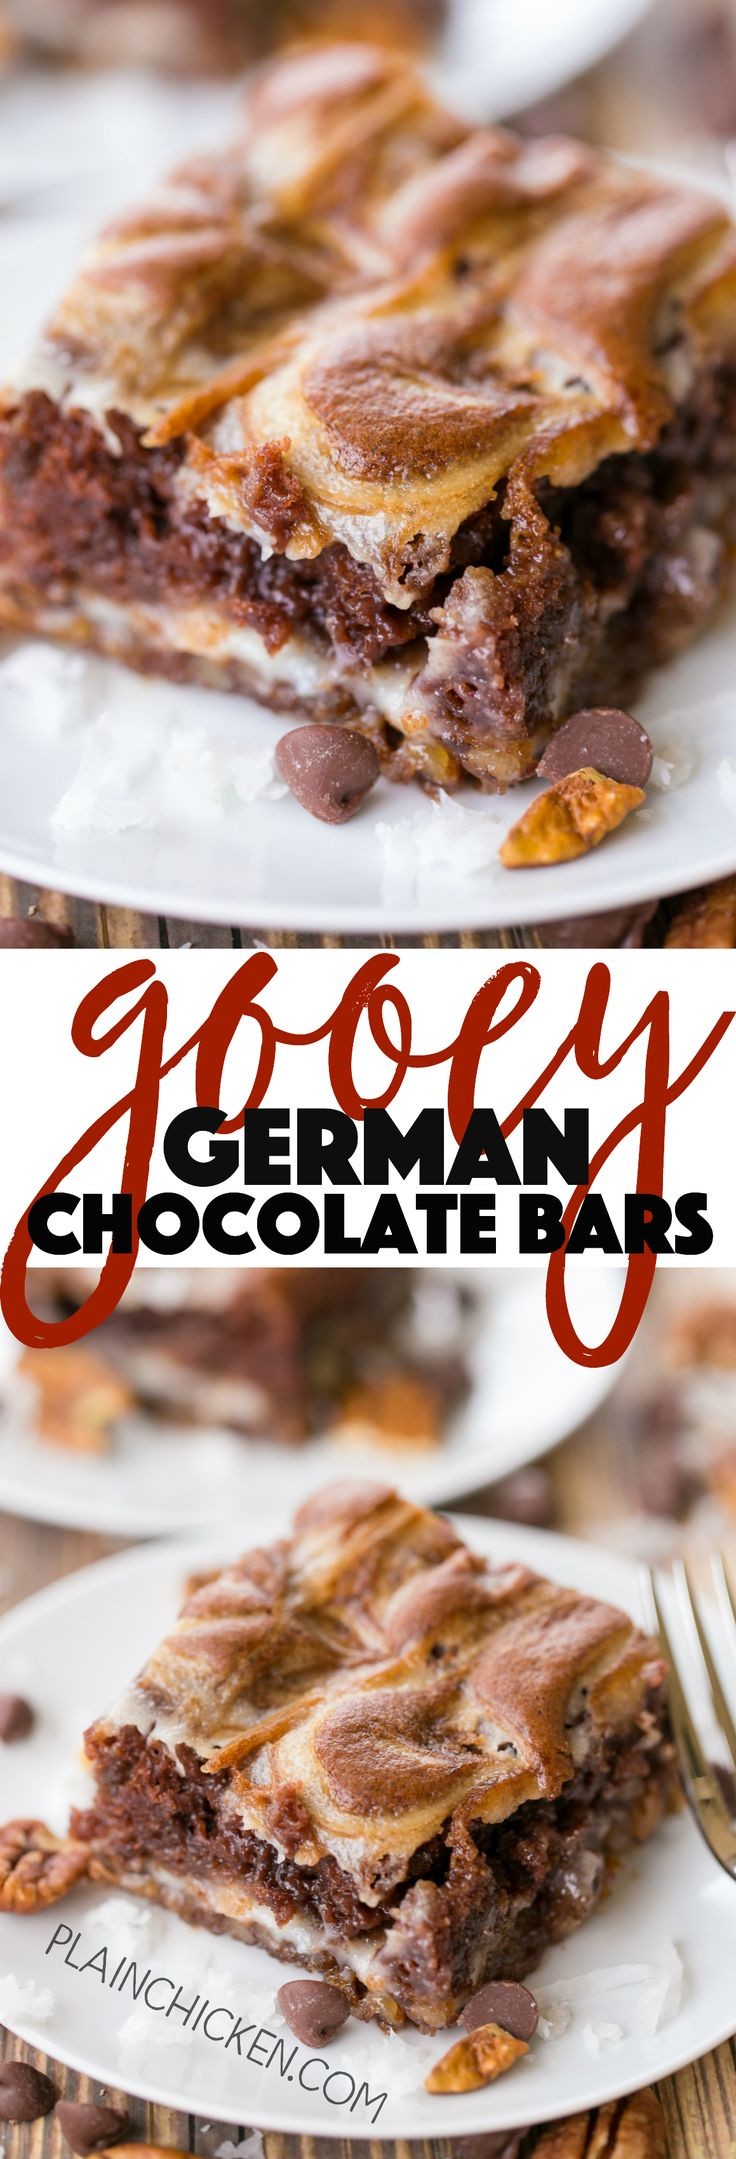 Gooey German Chocolate Bars - ooey, gooey heaven in a pan! These things are SOOOO good!!! Coconut, pecans, german chocolate cake mix, cream cheese, butter and powdered sugar. Only takes a minute to ma (German Butter Cookies)